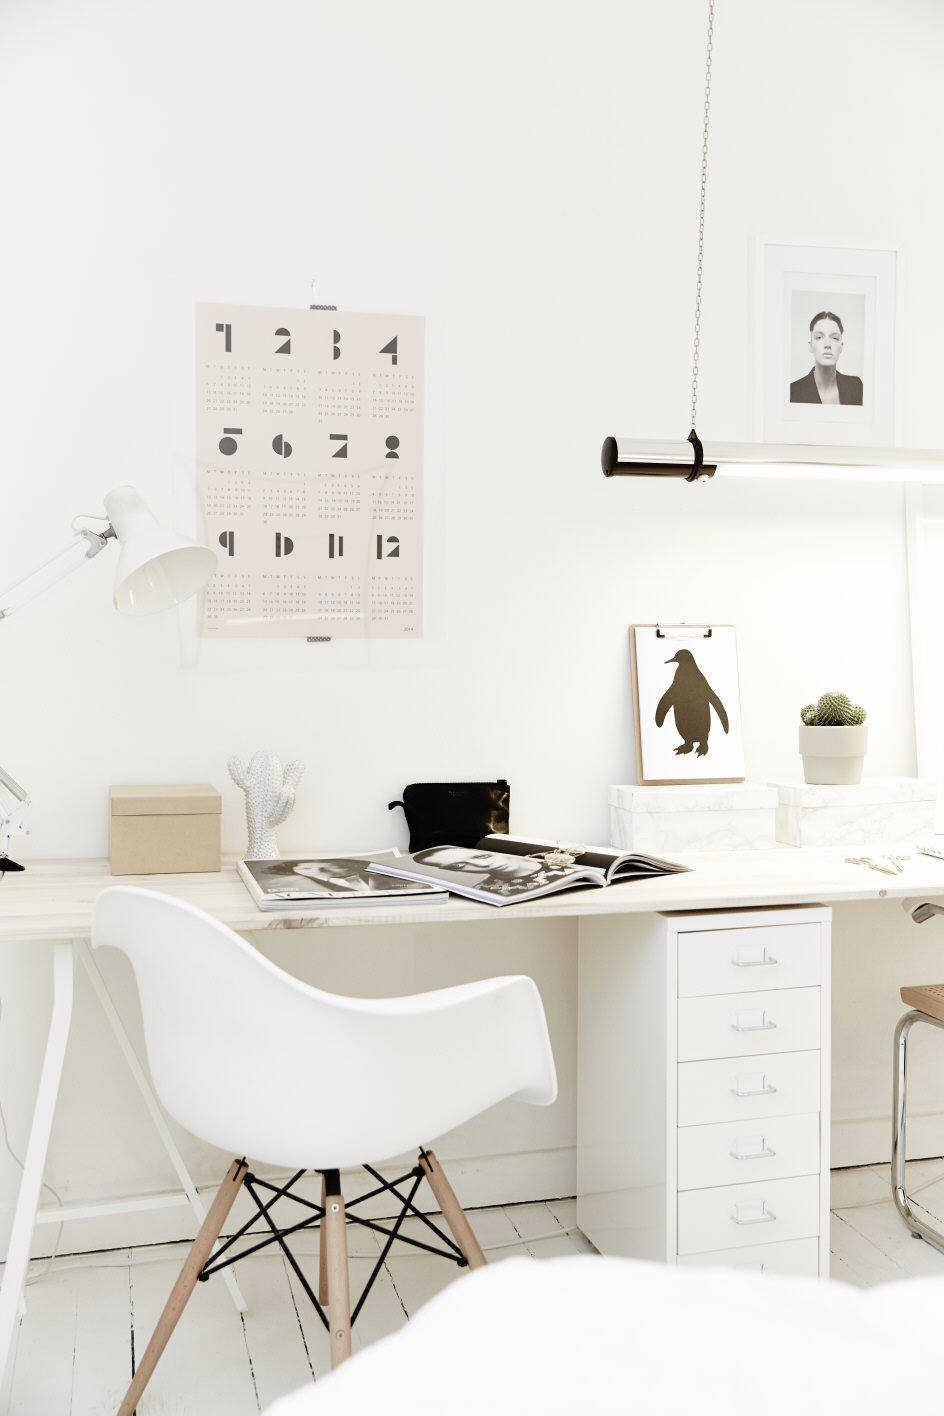 Question de style un bureau chez soi pour travailler zen for Interior designs tumblr